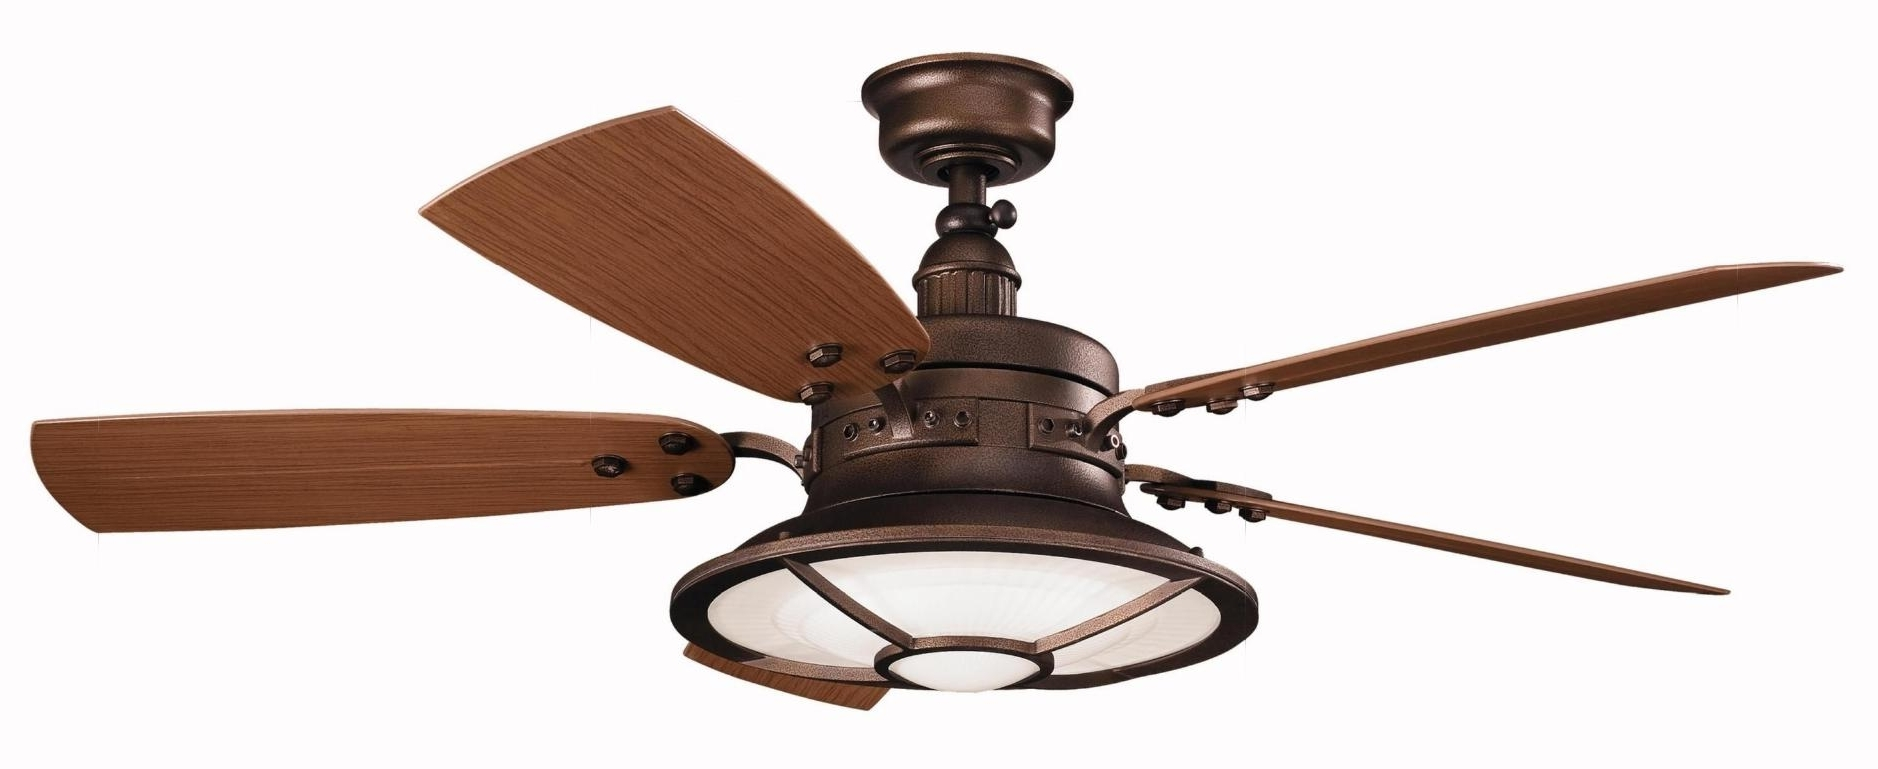 Light : Kichler Fan Led Lighting Ceiling Fans Waterproof Outdoor Within Favorite Waterproof Outdoor Ceiling Fans (View 11 of 20)